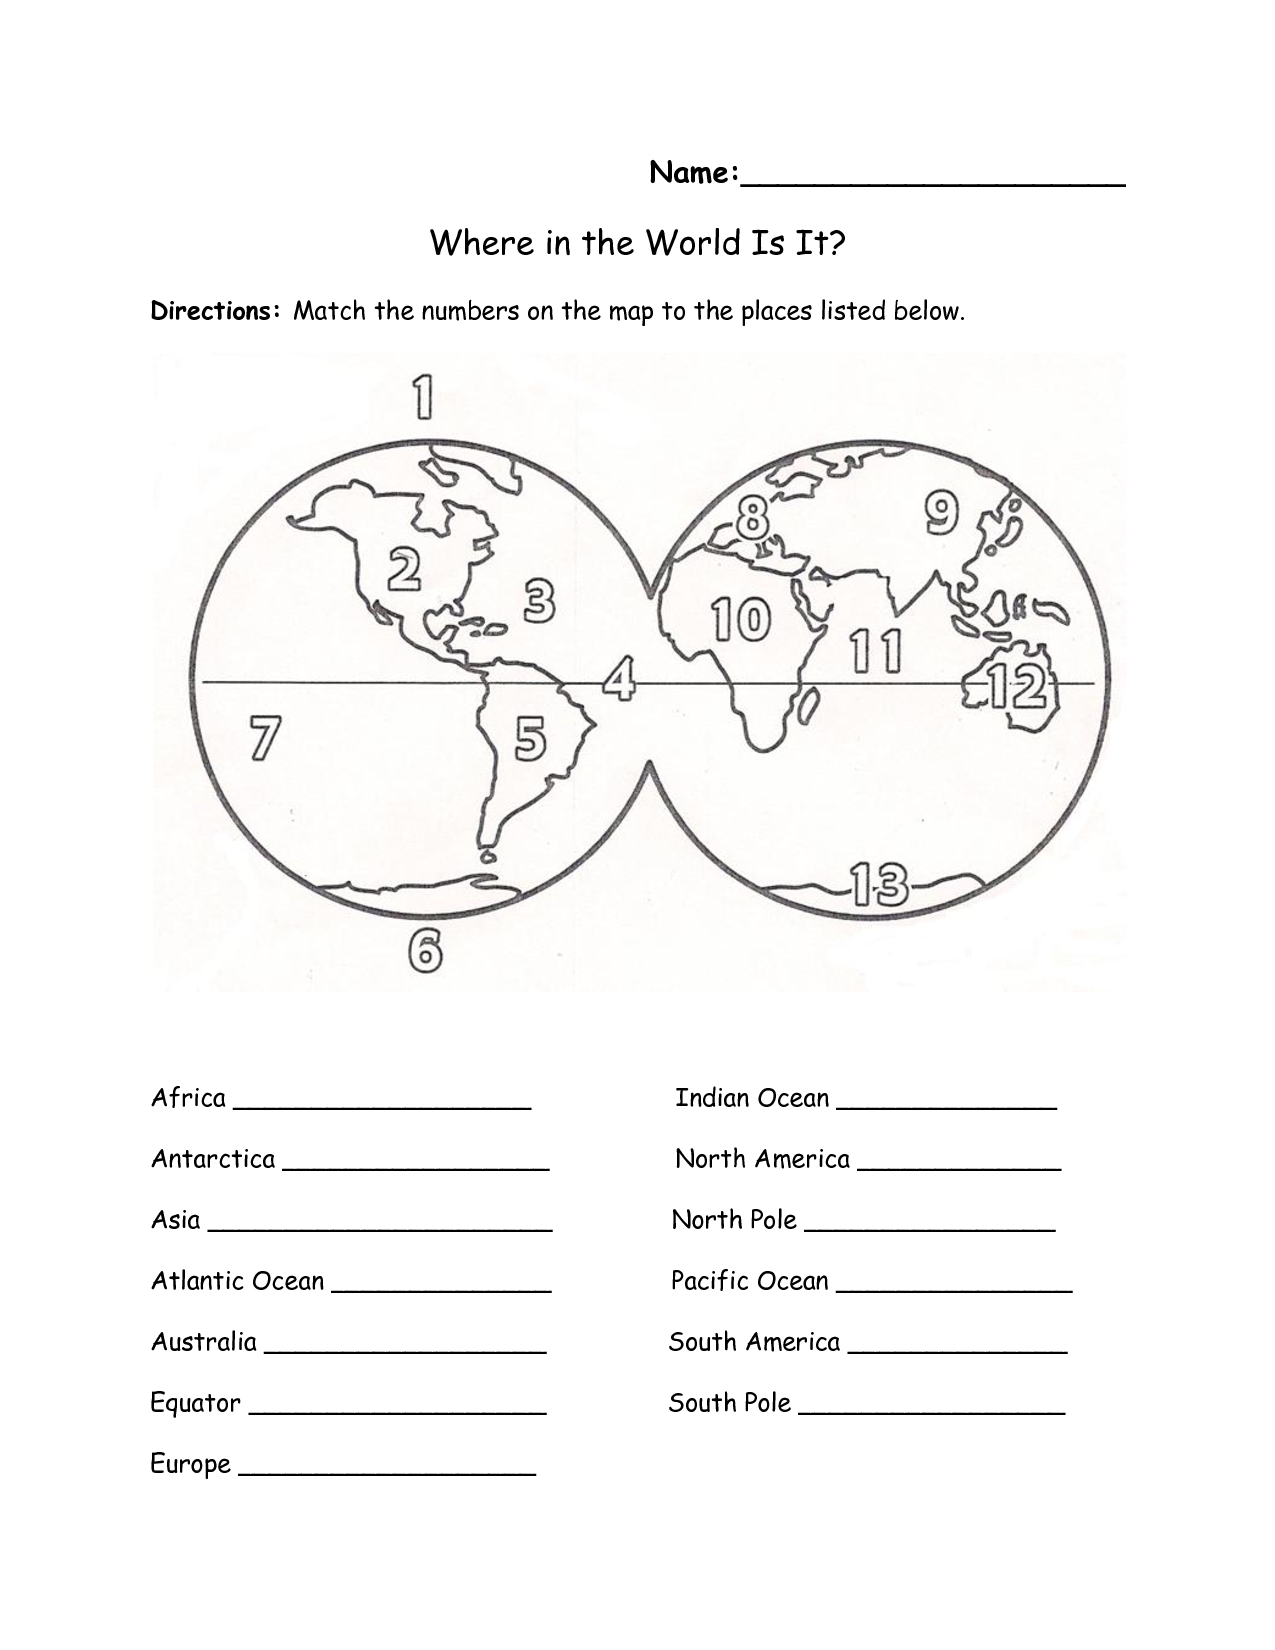 Worksheets The Physical World Continents And Oceans Worksheet printables continents and oceans of the world worksheet education worksheet